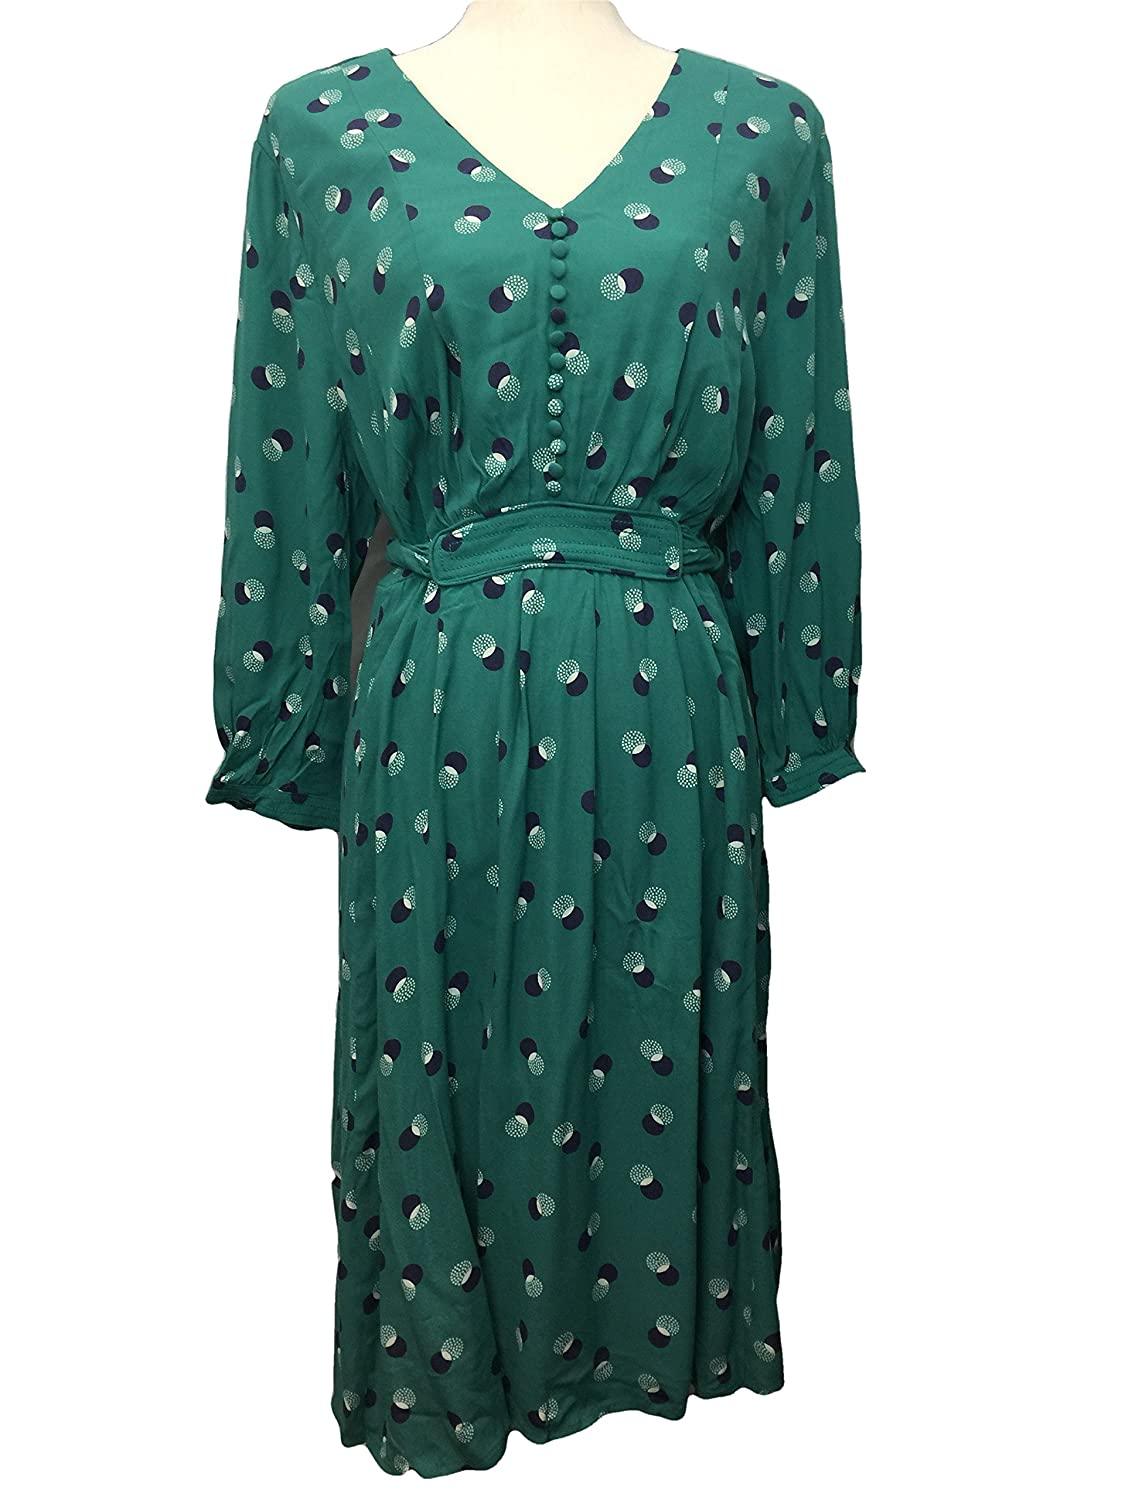 0ff01a1a4f BODEN Green Anouk Dress Size US 16 at Amazon Women s Clothing store